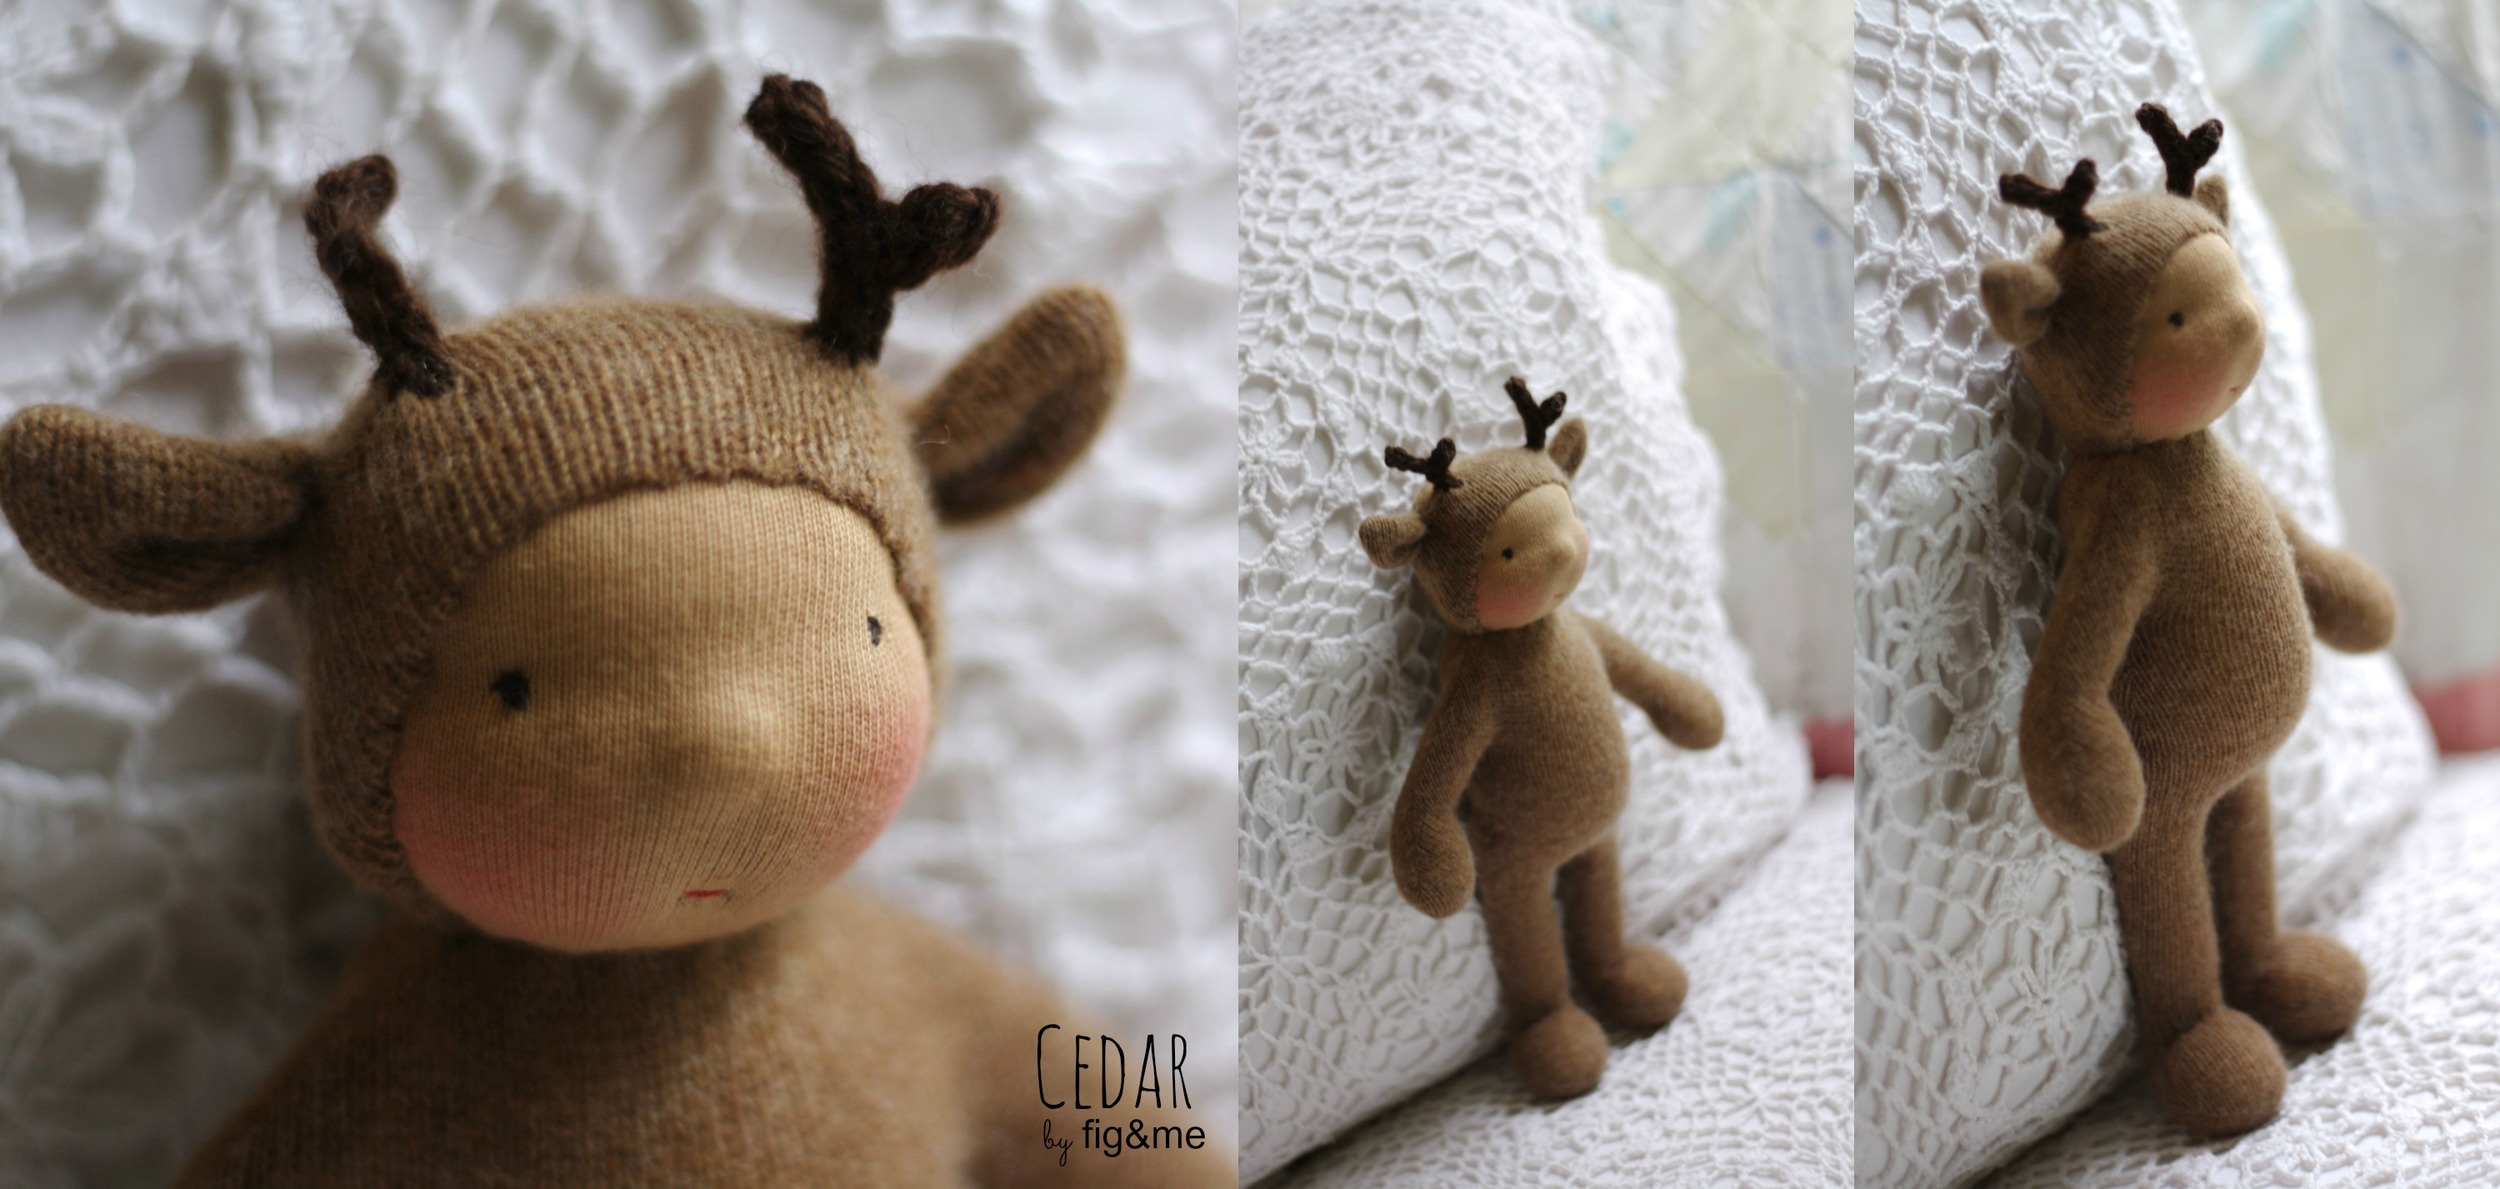 Cedar by Fig and Me.